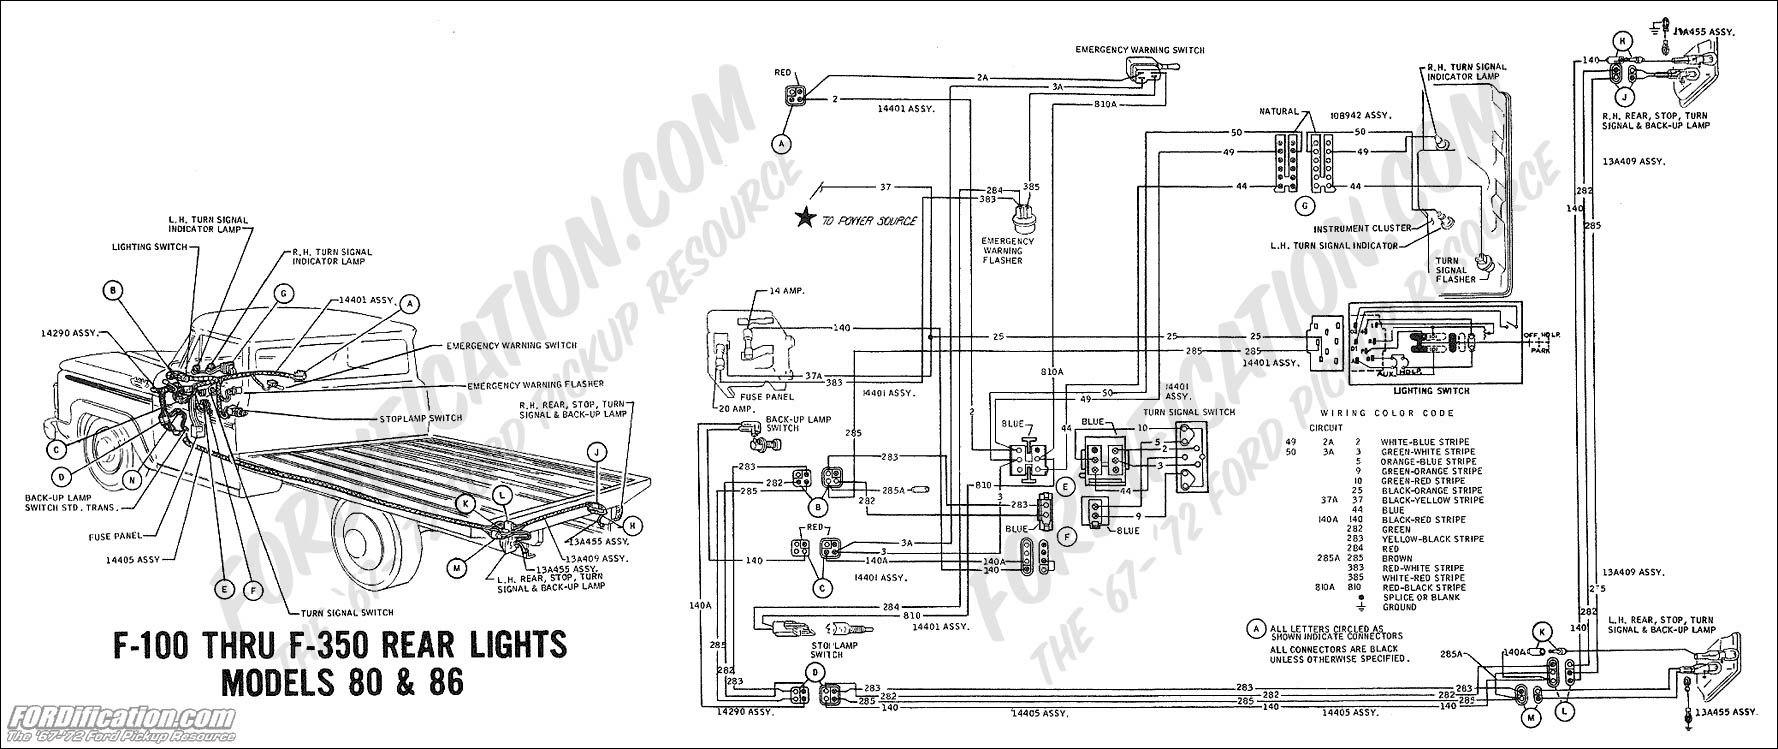 86 f150 lights wiring diagram 86 wiring diagrams lights wiring diagram wiring 69rearlights mdls80 86